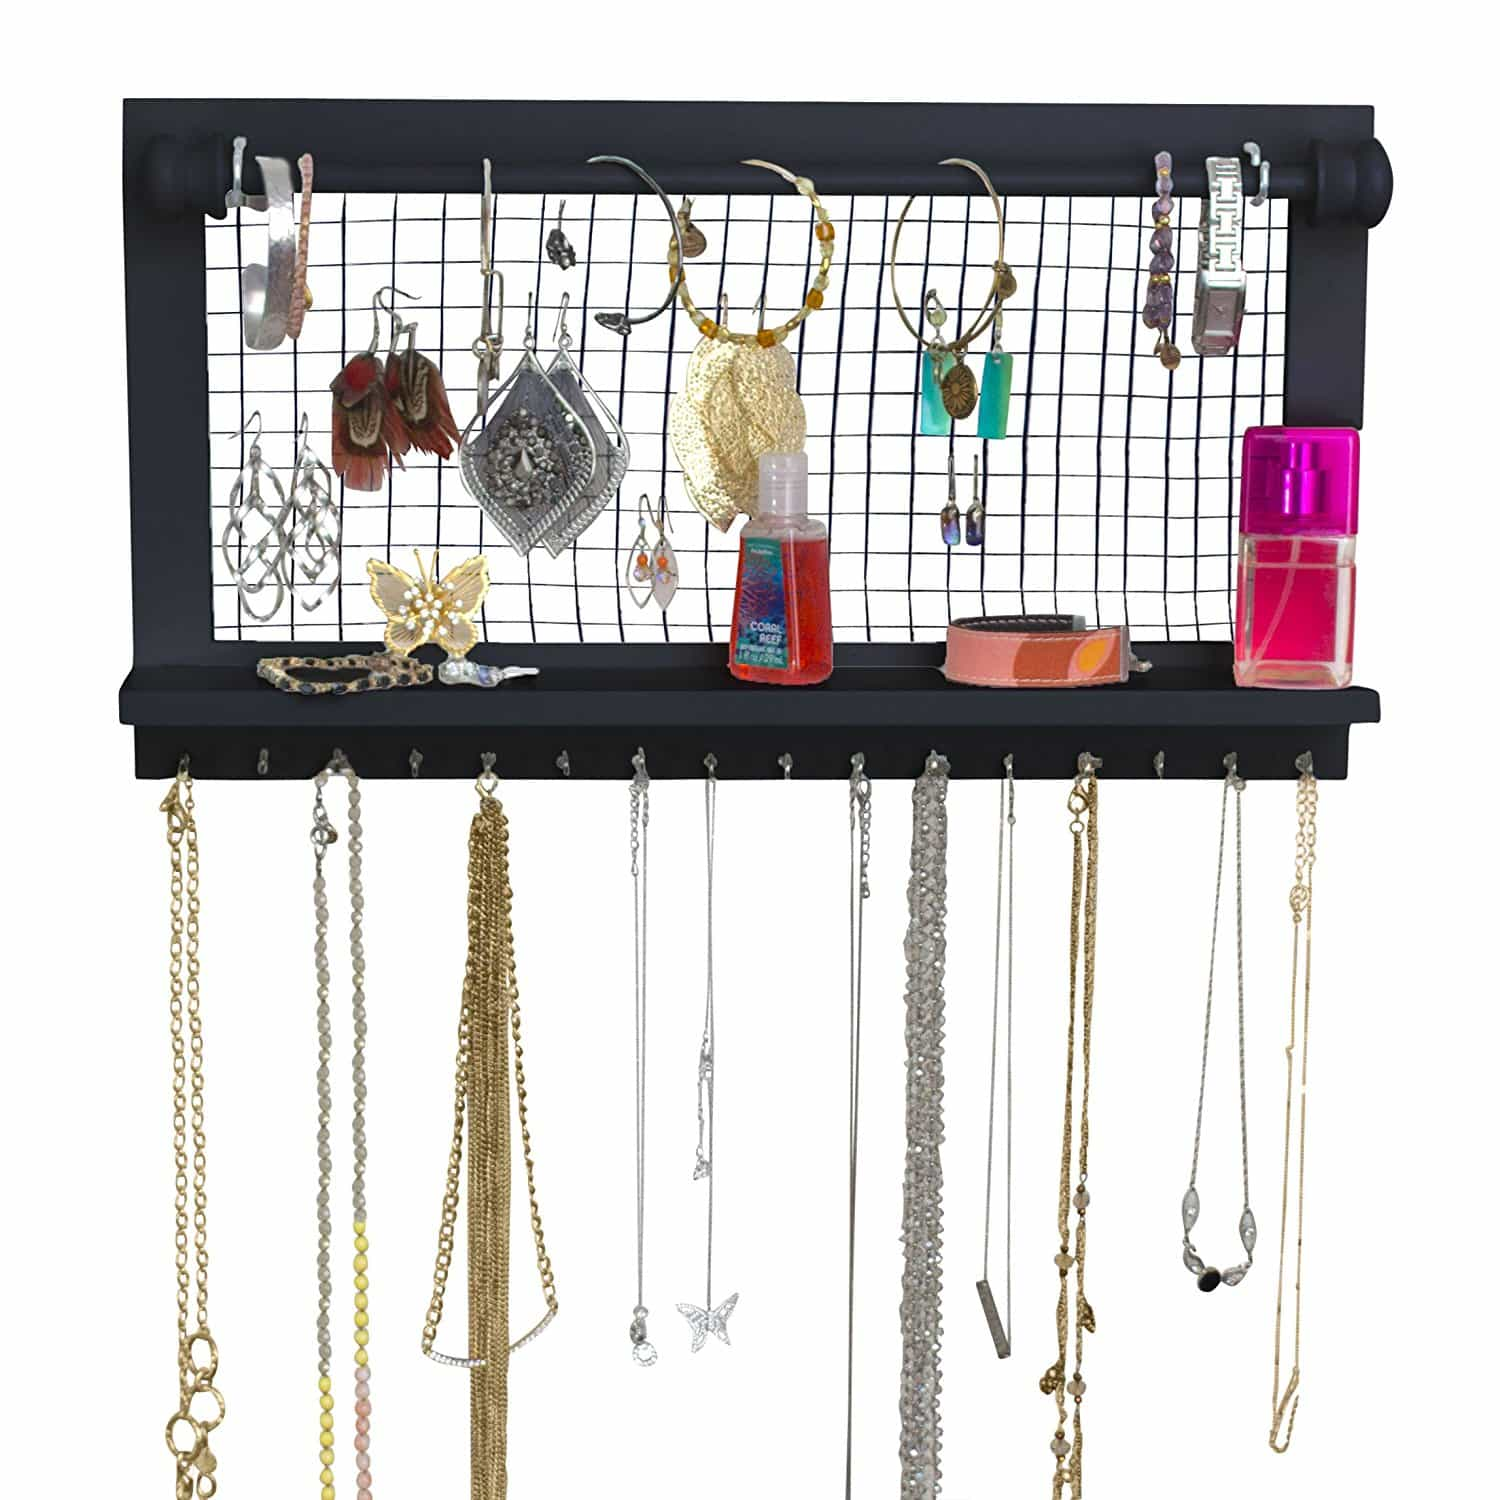 b1f227ca4 SoCal Buttercup Espresso Jewelry Organizer with Removable Bracelet Rod from  Wooden Wall Mounted Holder for Earrings ...